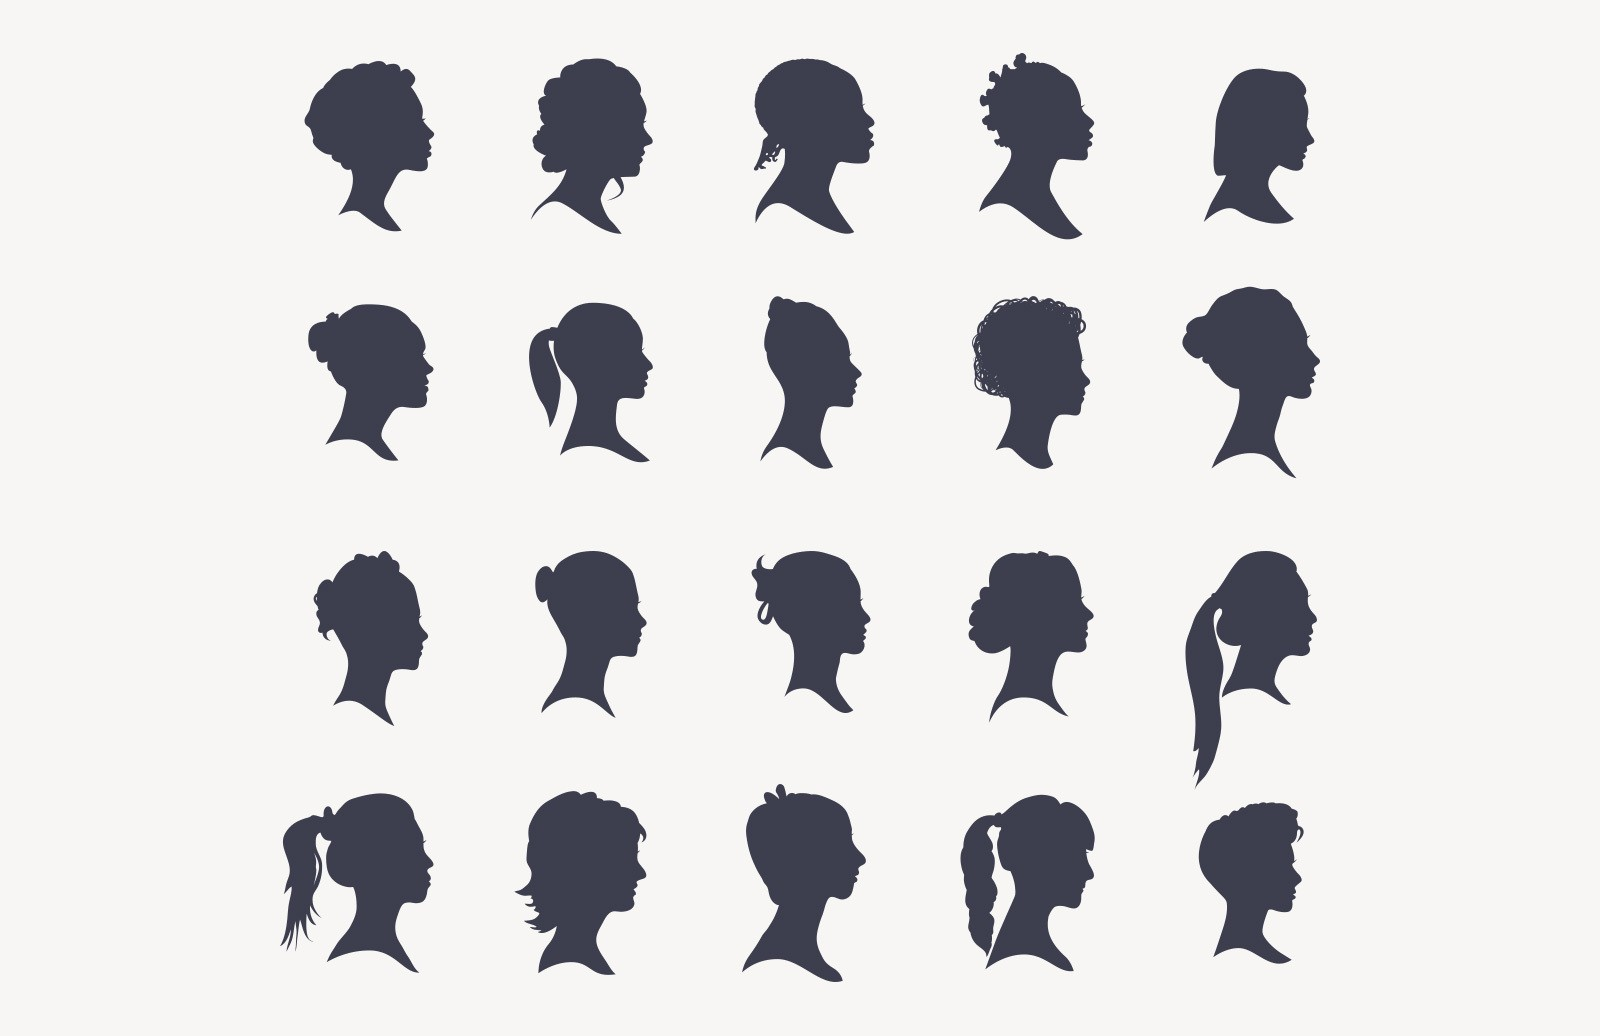 20 Head Silhouettes - Women Edition 2